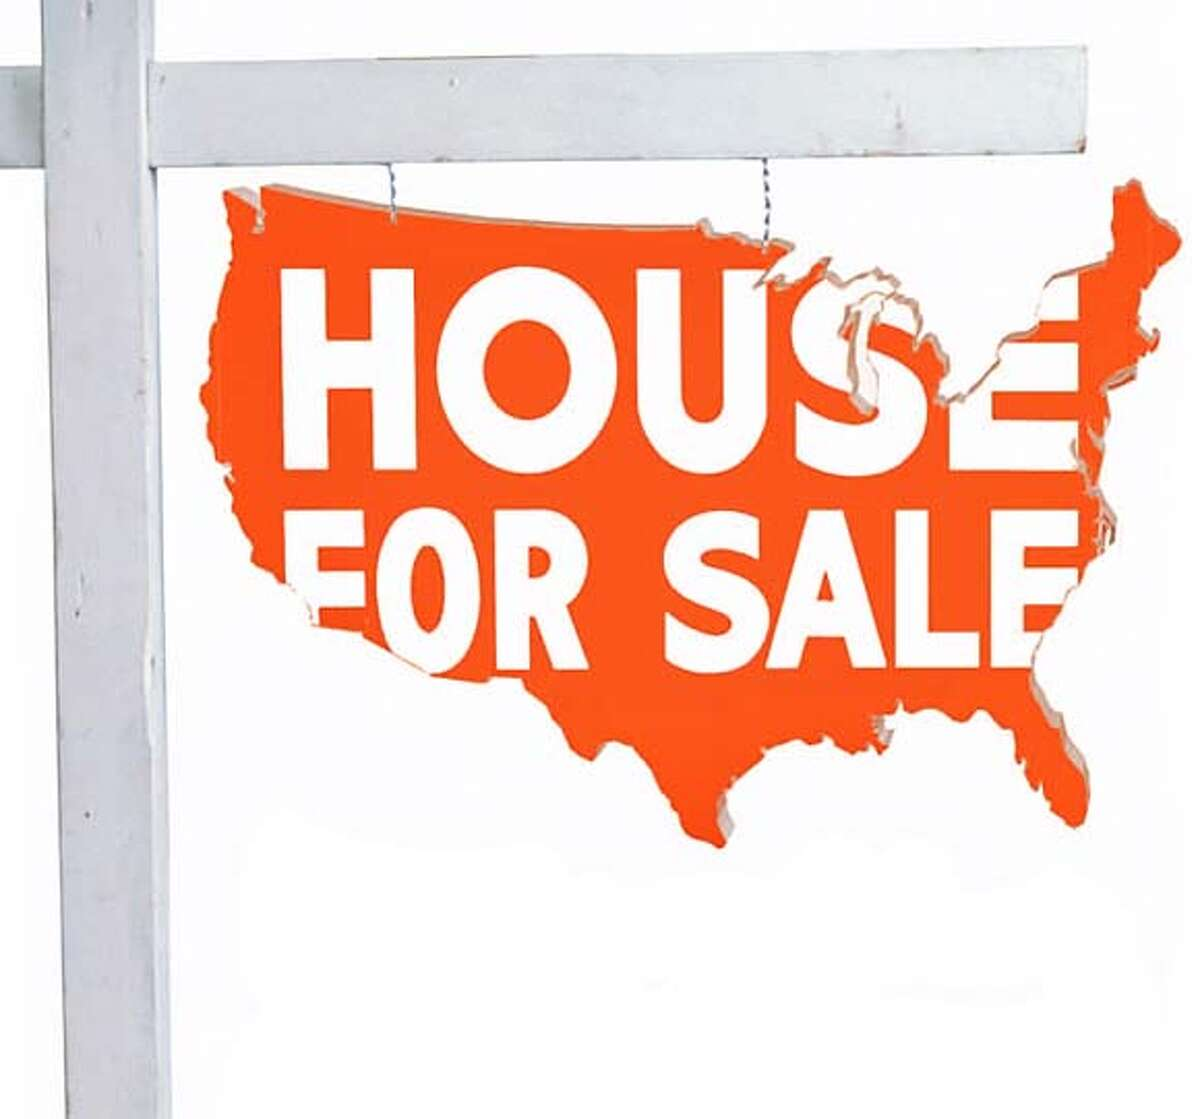 House for Sale. Chronicle Illustration